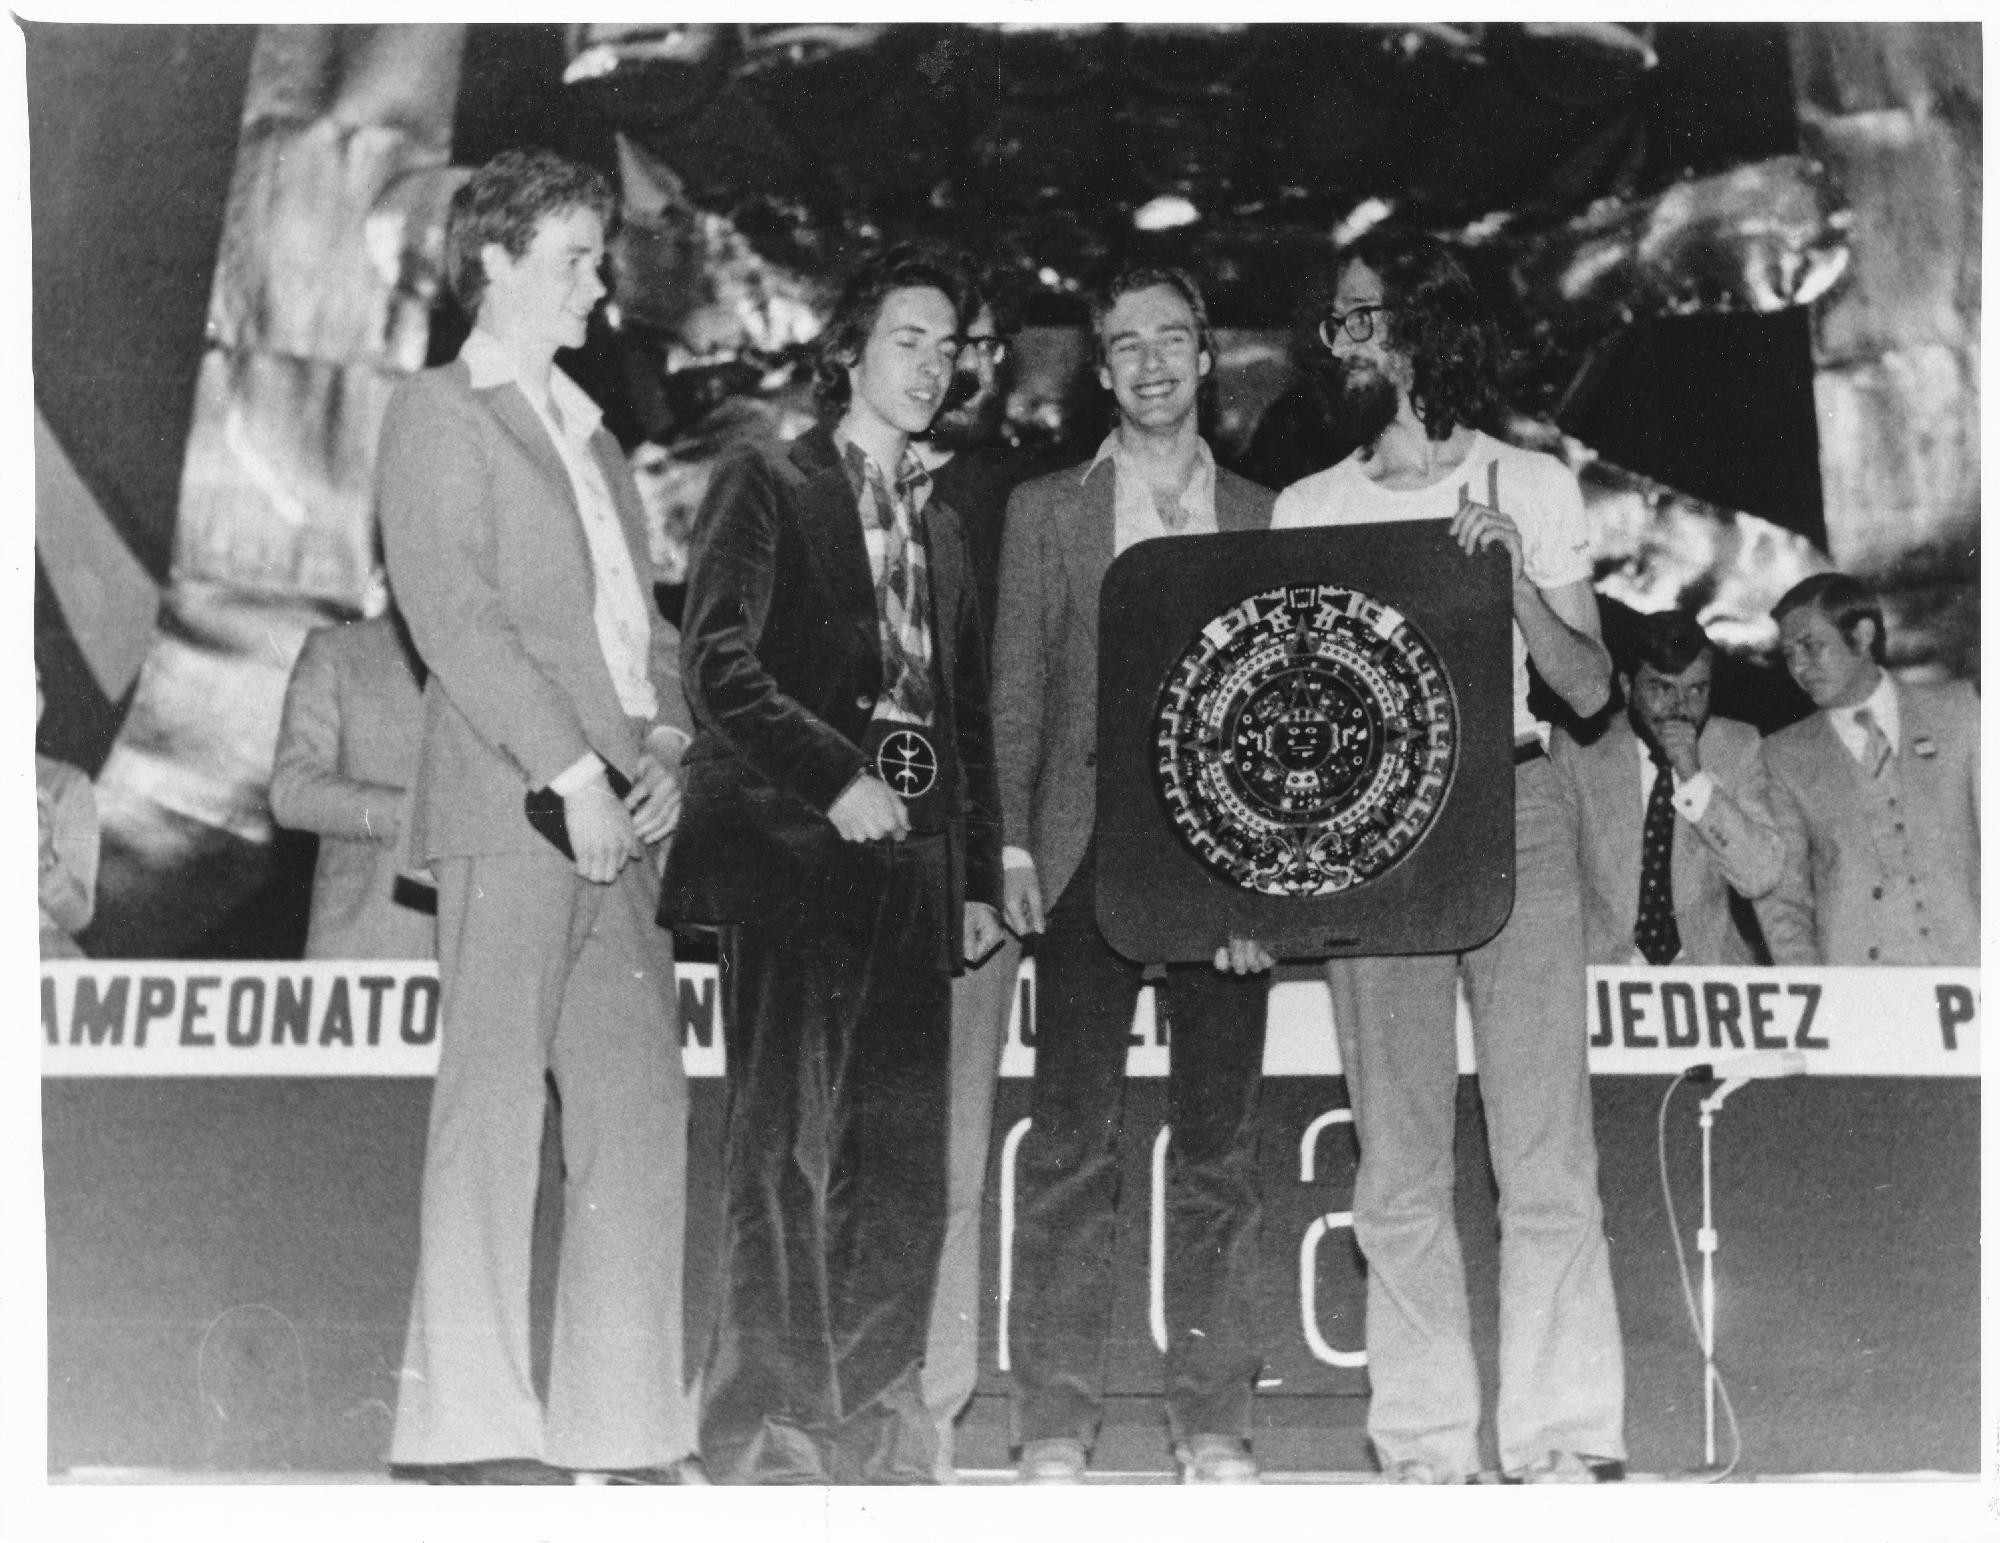 (from l-r) Jonathan Kinlay, Shaun Taulbut, Jonathan Speelman, David Goodman and Jonathan Mestel accepting 1st prize at the 1978 World U26 Student Olympiad in Mexico City